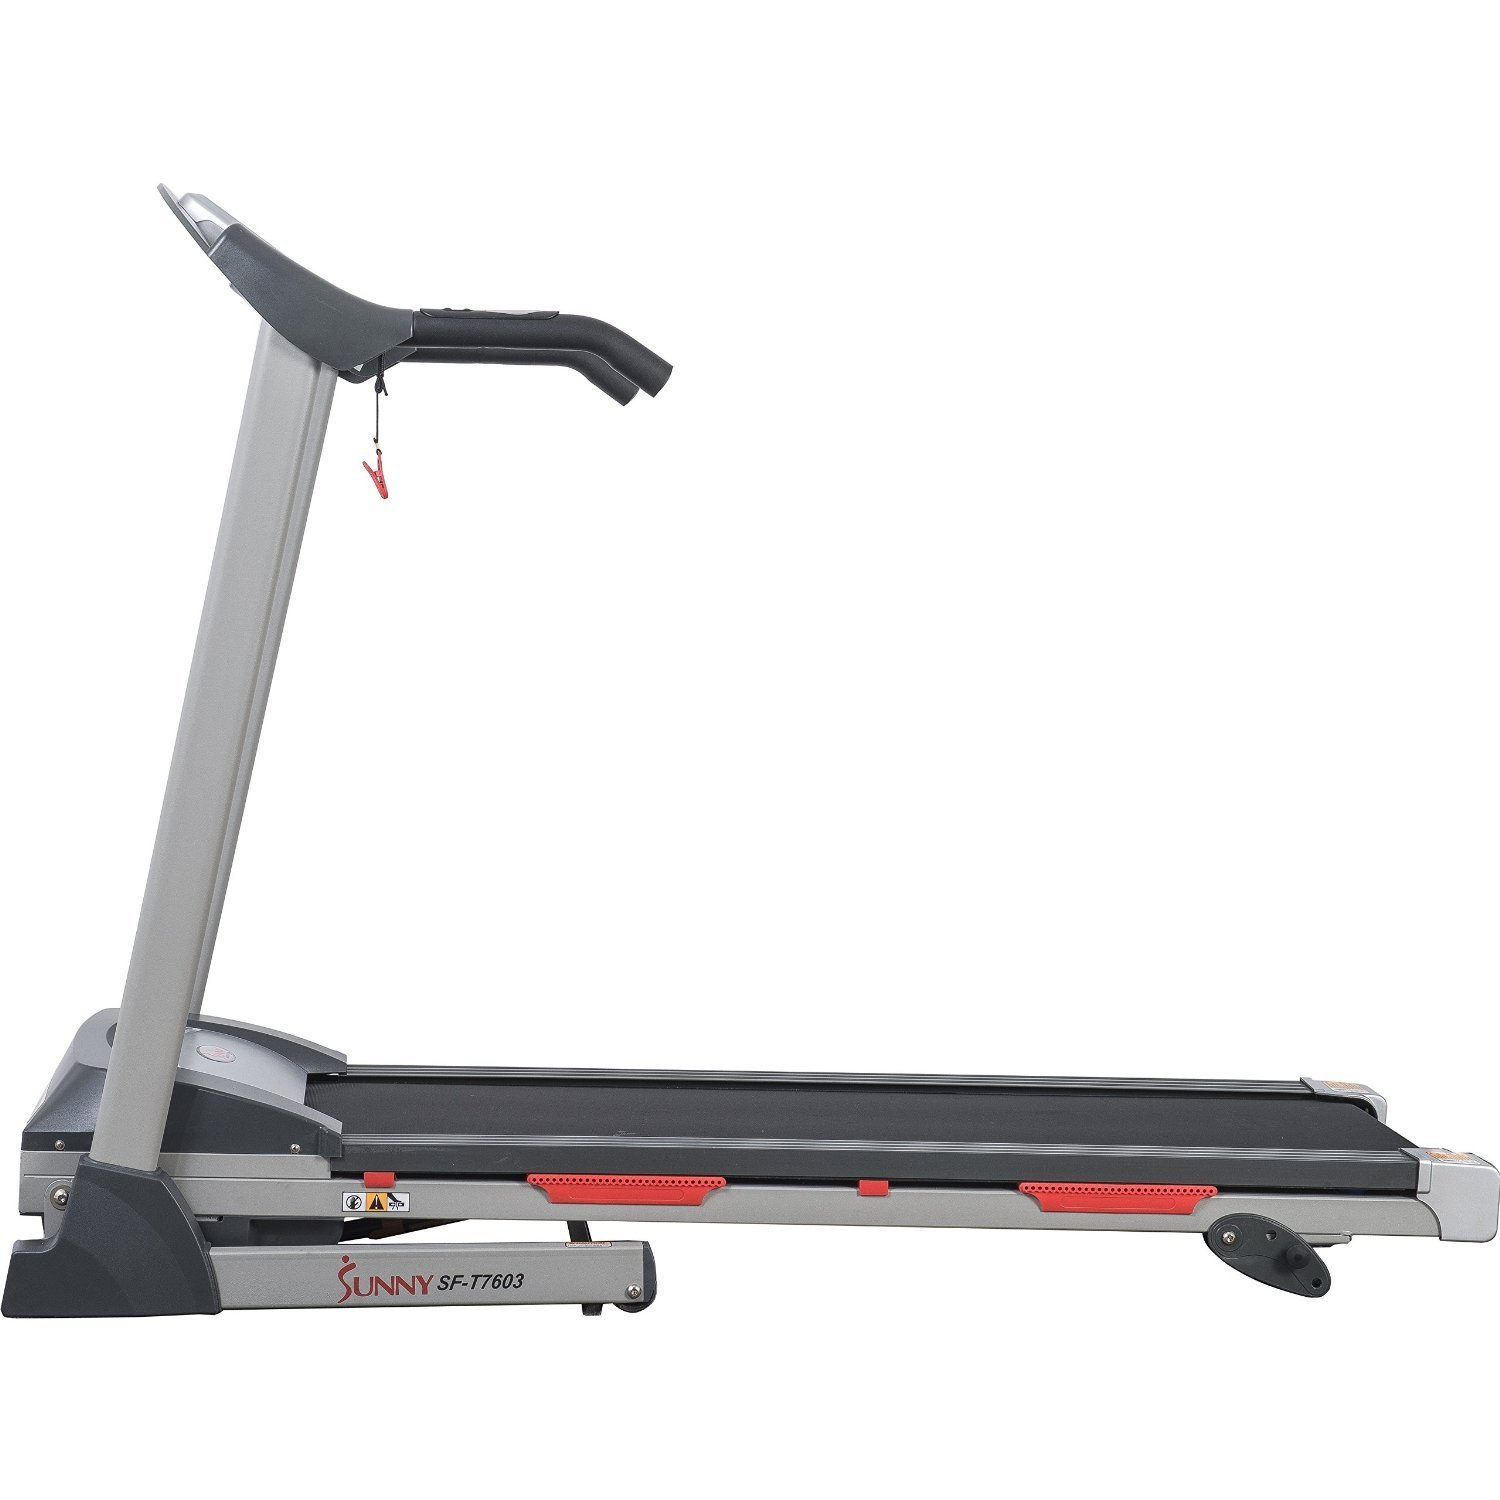 Sunny Health Fitness Sf T7603 Electric Treadmill Review